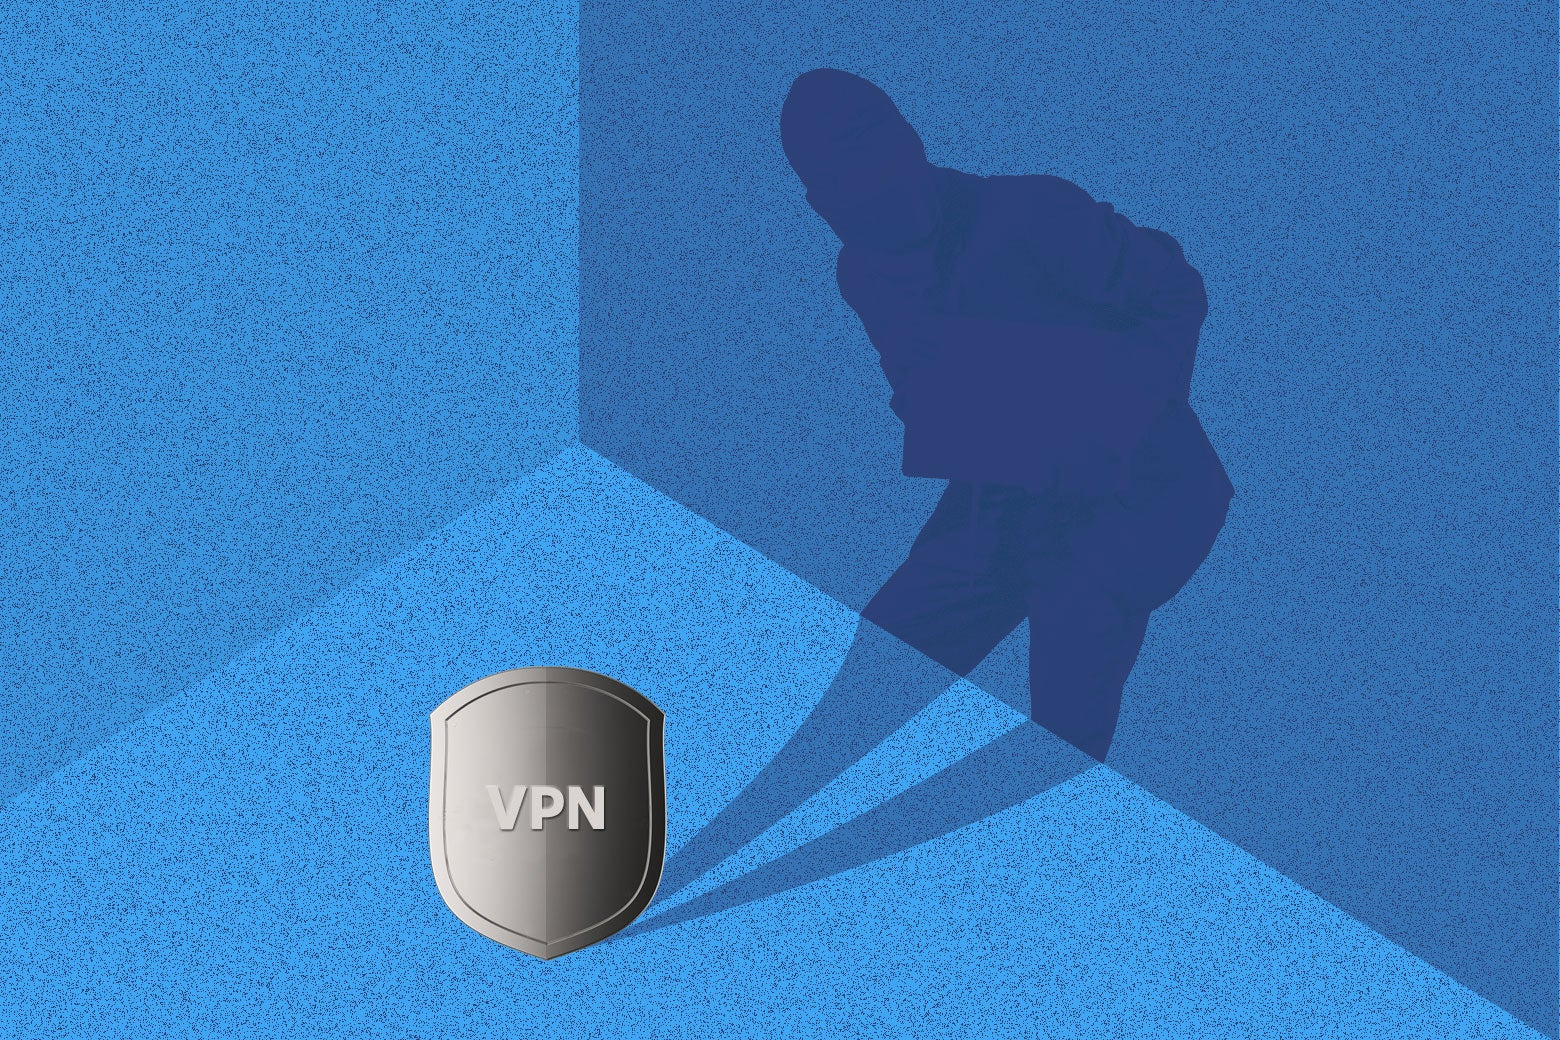 Best VPN Services for USA